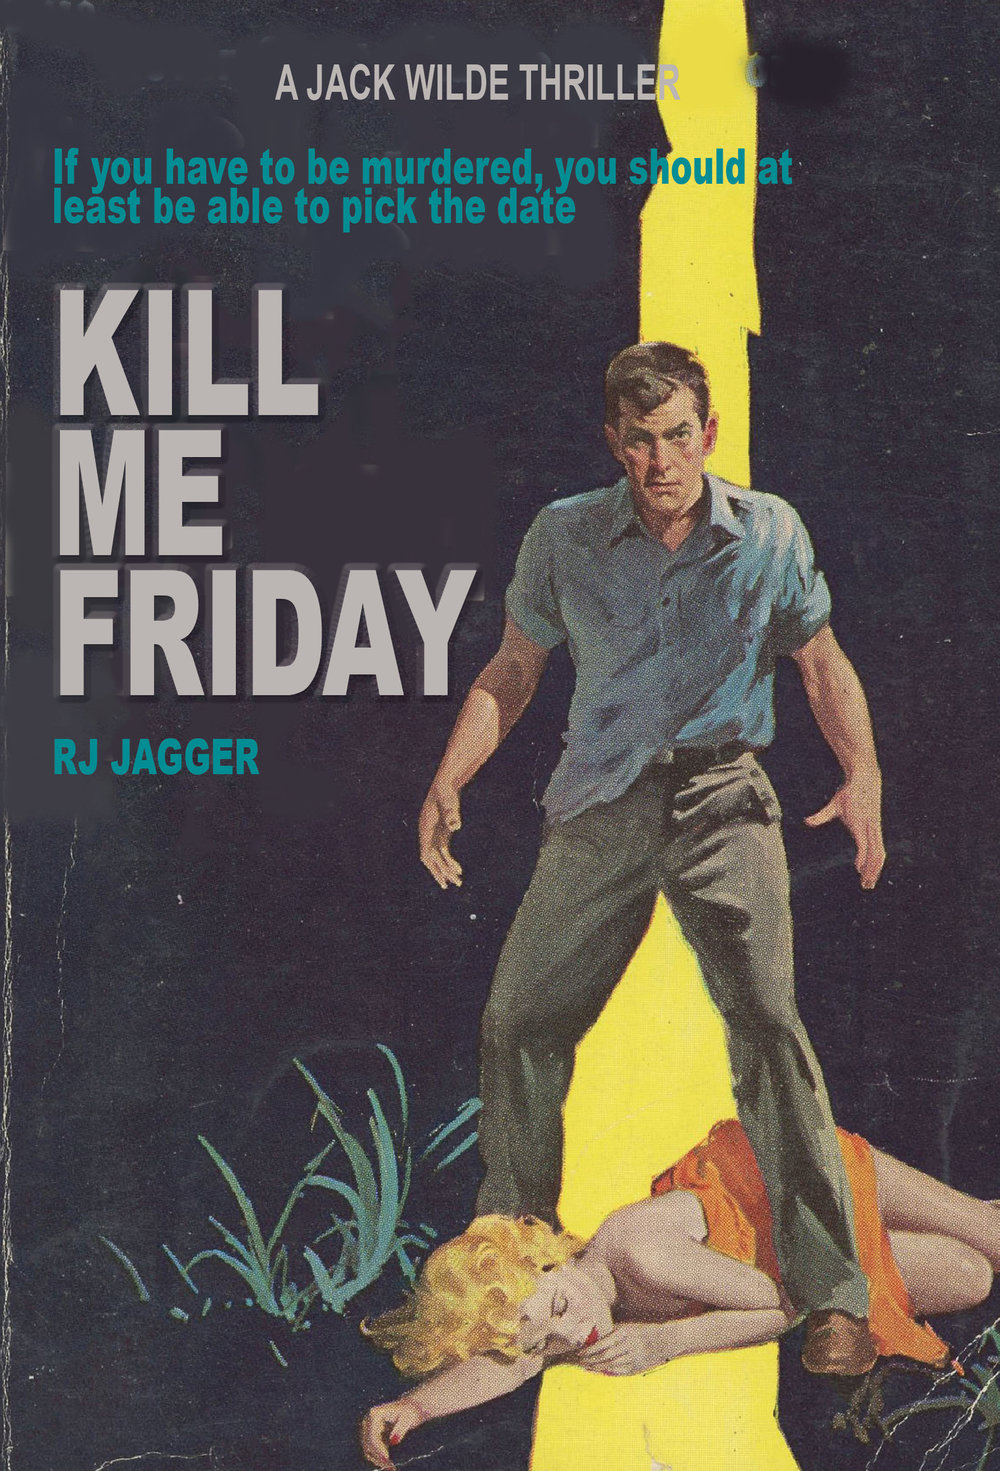 KILL ME FRIDAY - Jack Wilde, investigator for hire, lives in an edgy world where the dames are dangerous, cigarettes dangle from ruby-red lips and the nights are hotter than whiskey-soaked jazz. In this riveting noir thriller from R.J. Jagger, Wilde finds himself spinning into a string of murders with the next one coming by the end of the week.